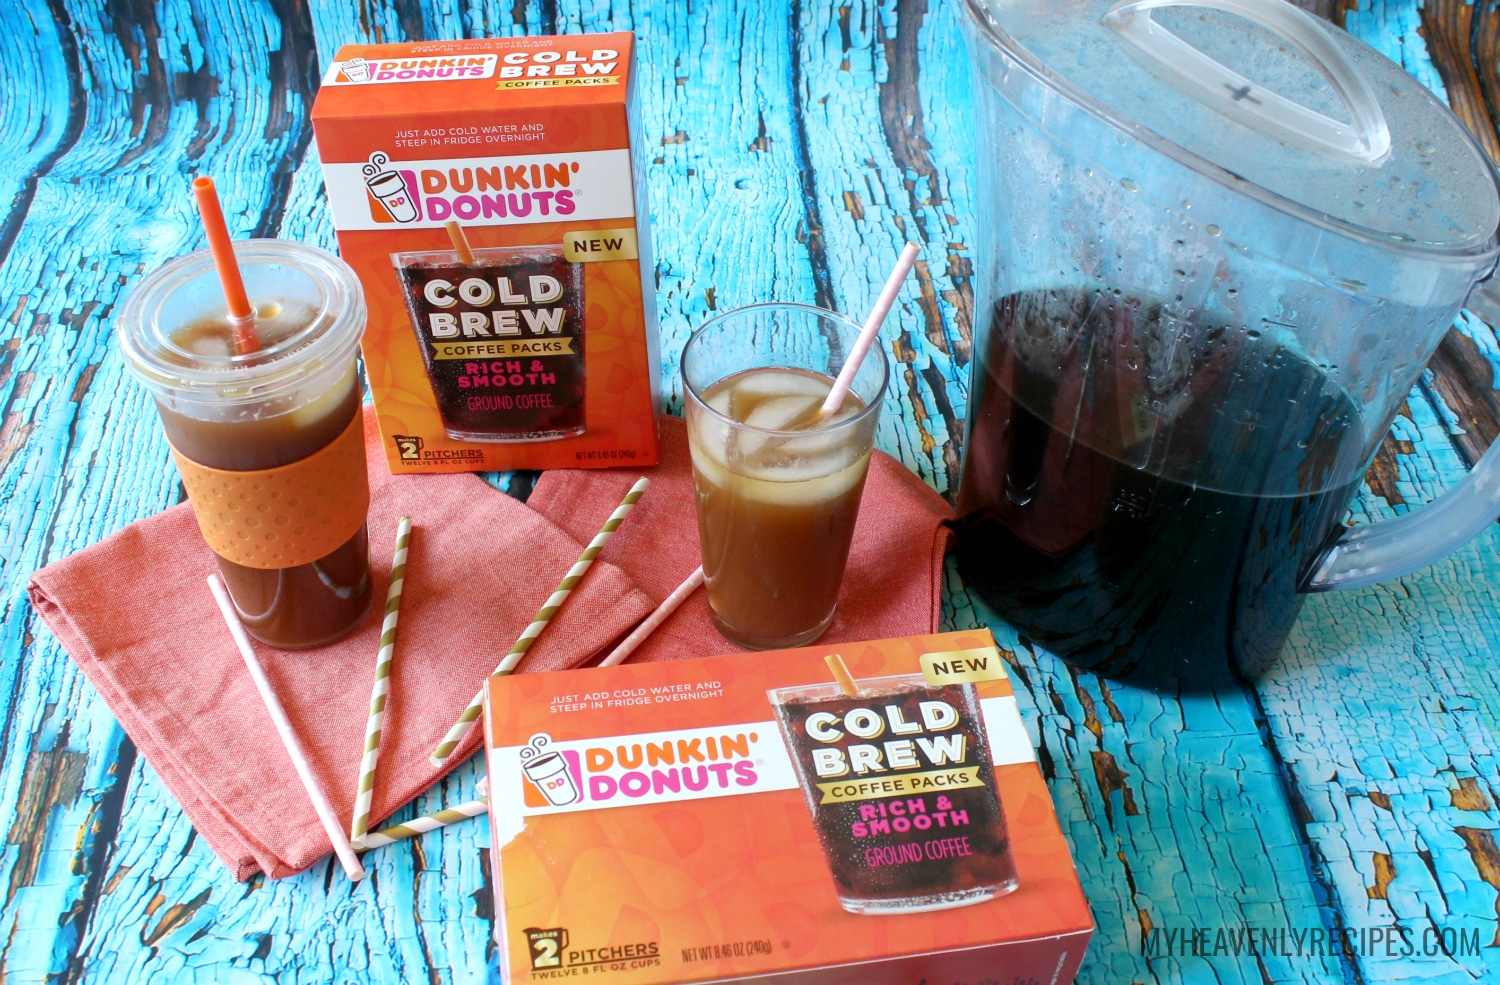 a pitcher and glasses of Dunkin Donuts brand homemade Cold Brew Coffee